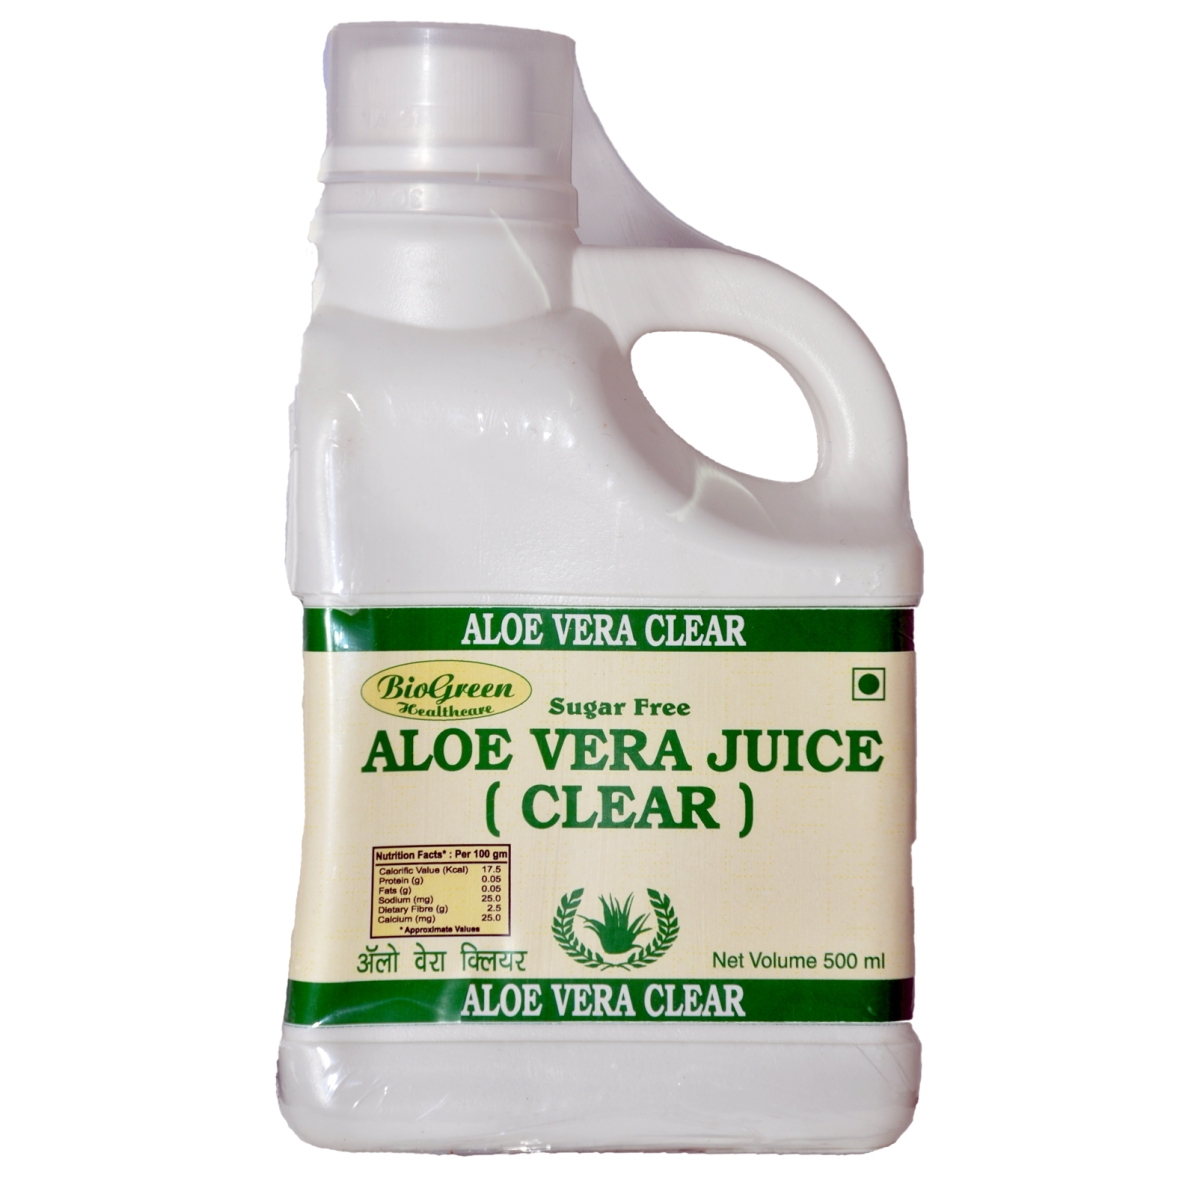 Aloe vera Clear Juice In Puducherry